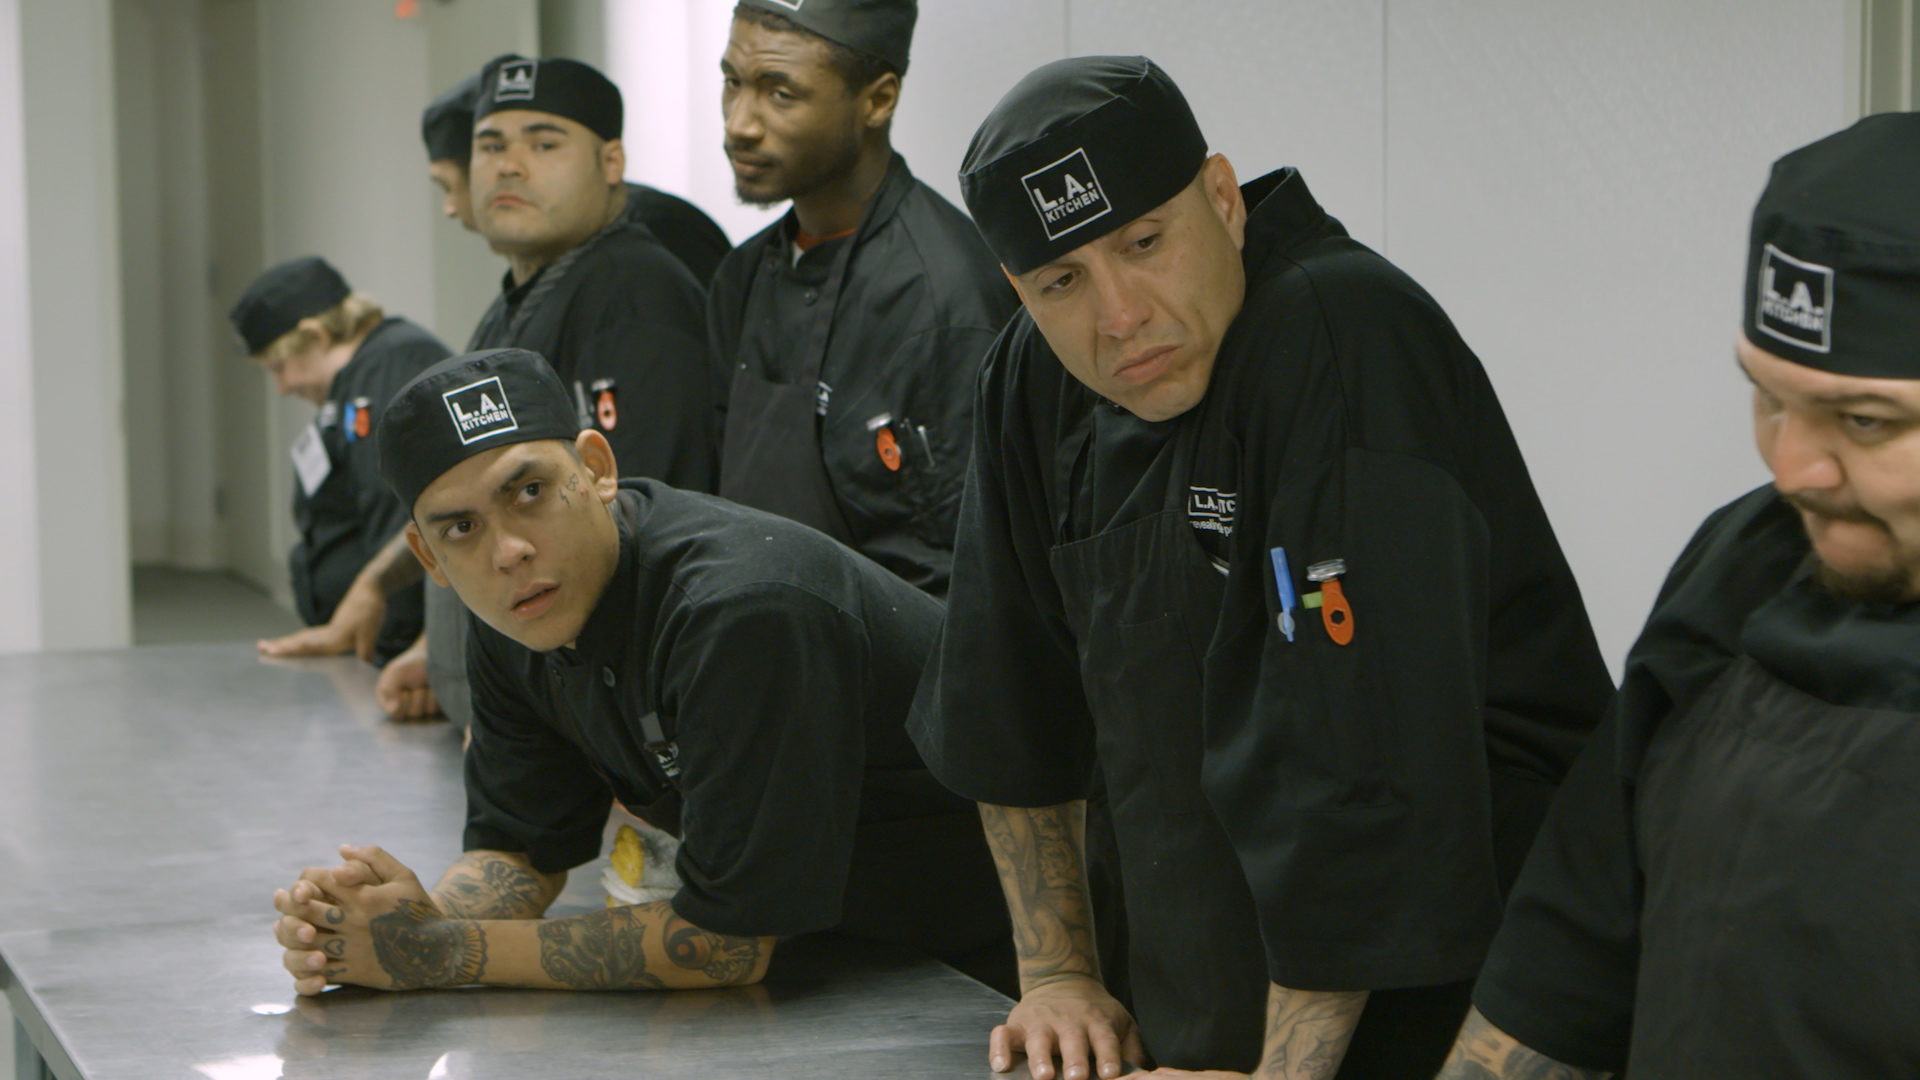 LA Kitchen students during morning meeting.